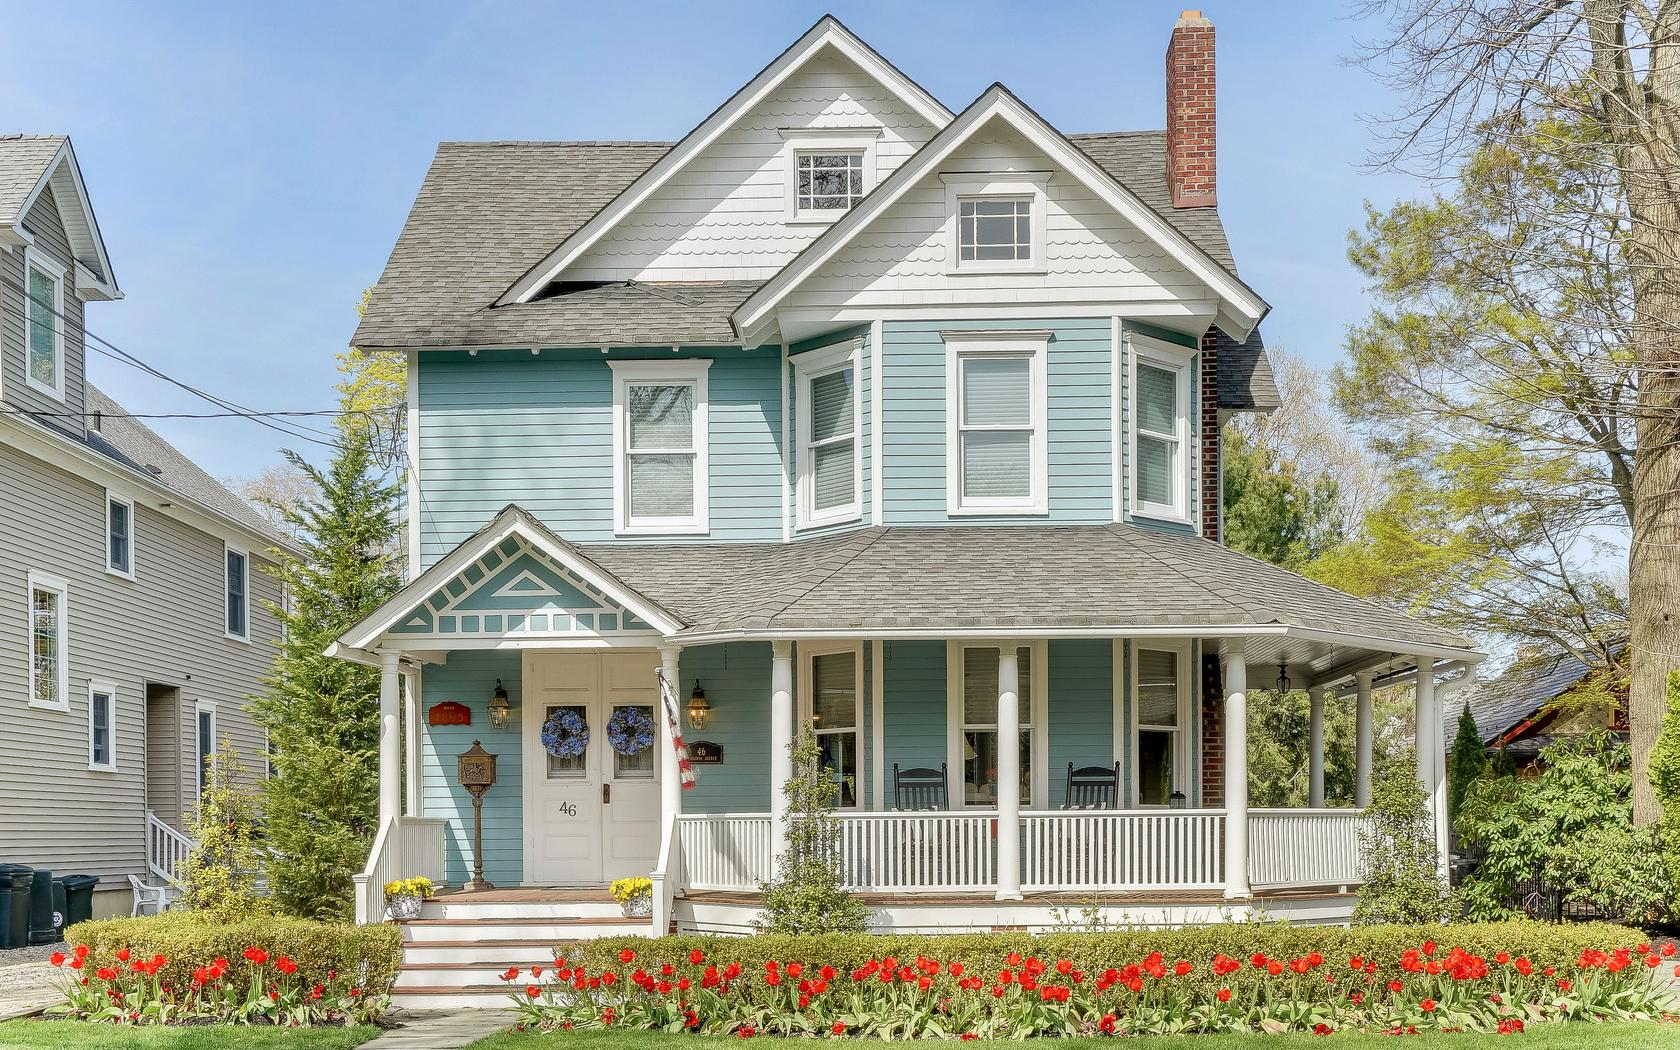 Single Family Home for Sale at Meticulously Restored and Updated! 46 Virginia Avenue Manasquan, New Jersey, 08736 United States